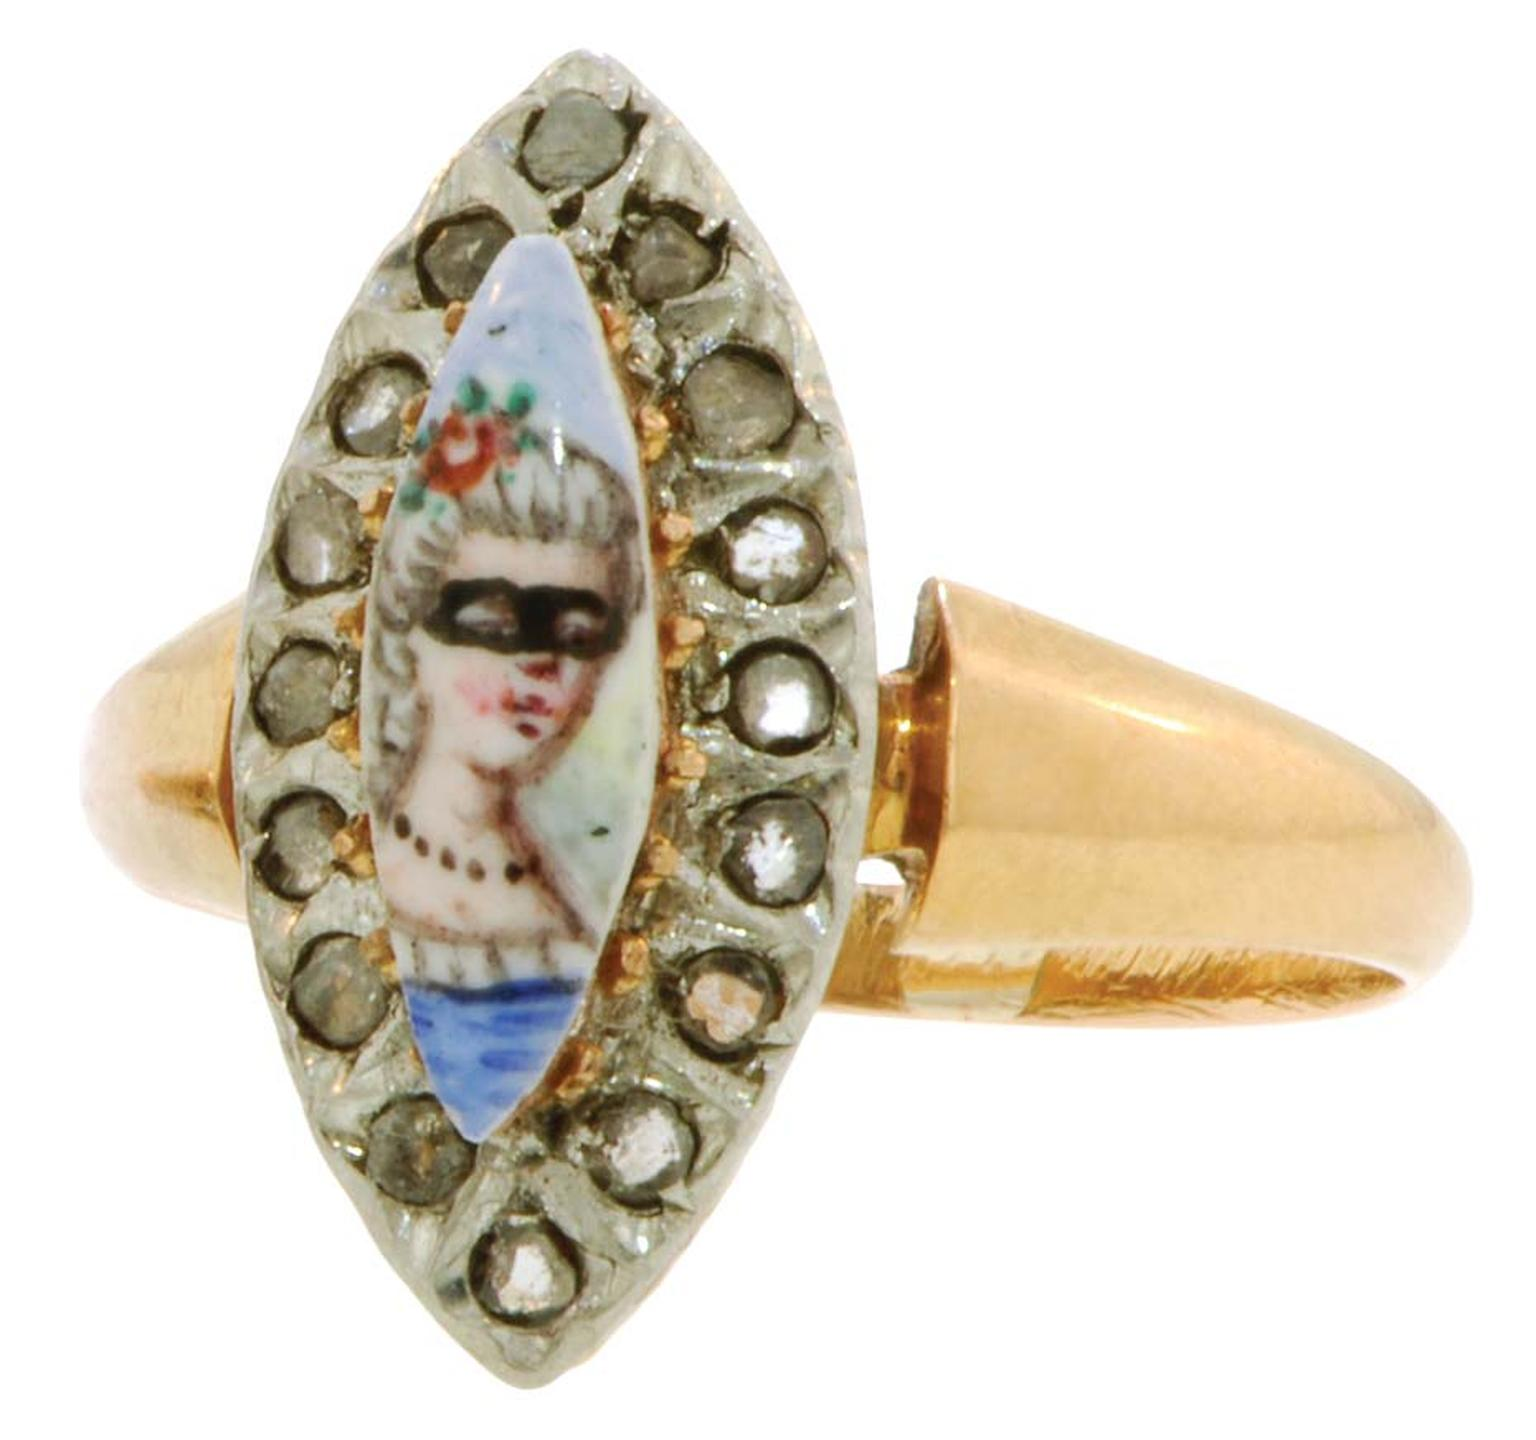 20th-century diamond Portrait and Mask ring featuring a hand-painted masked woman framed by rose-cut diamonds. From the private collection of Danielle Miele.